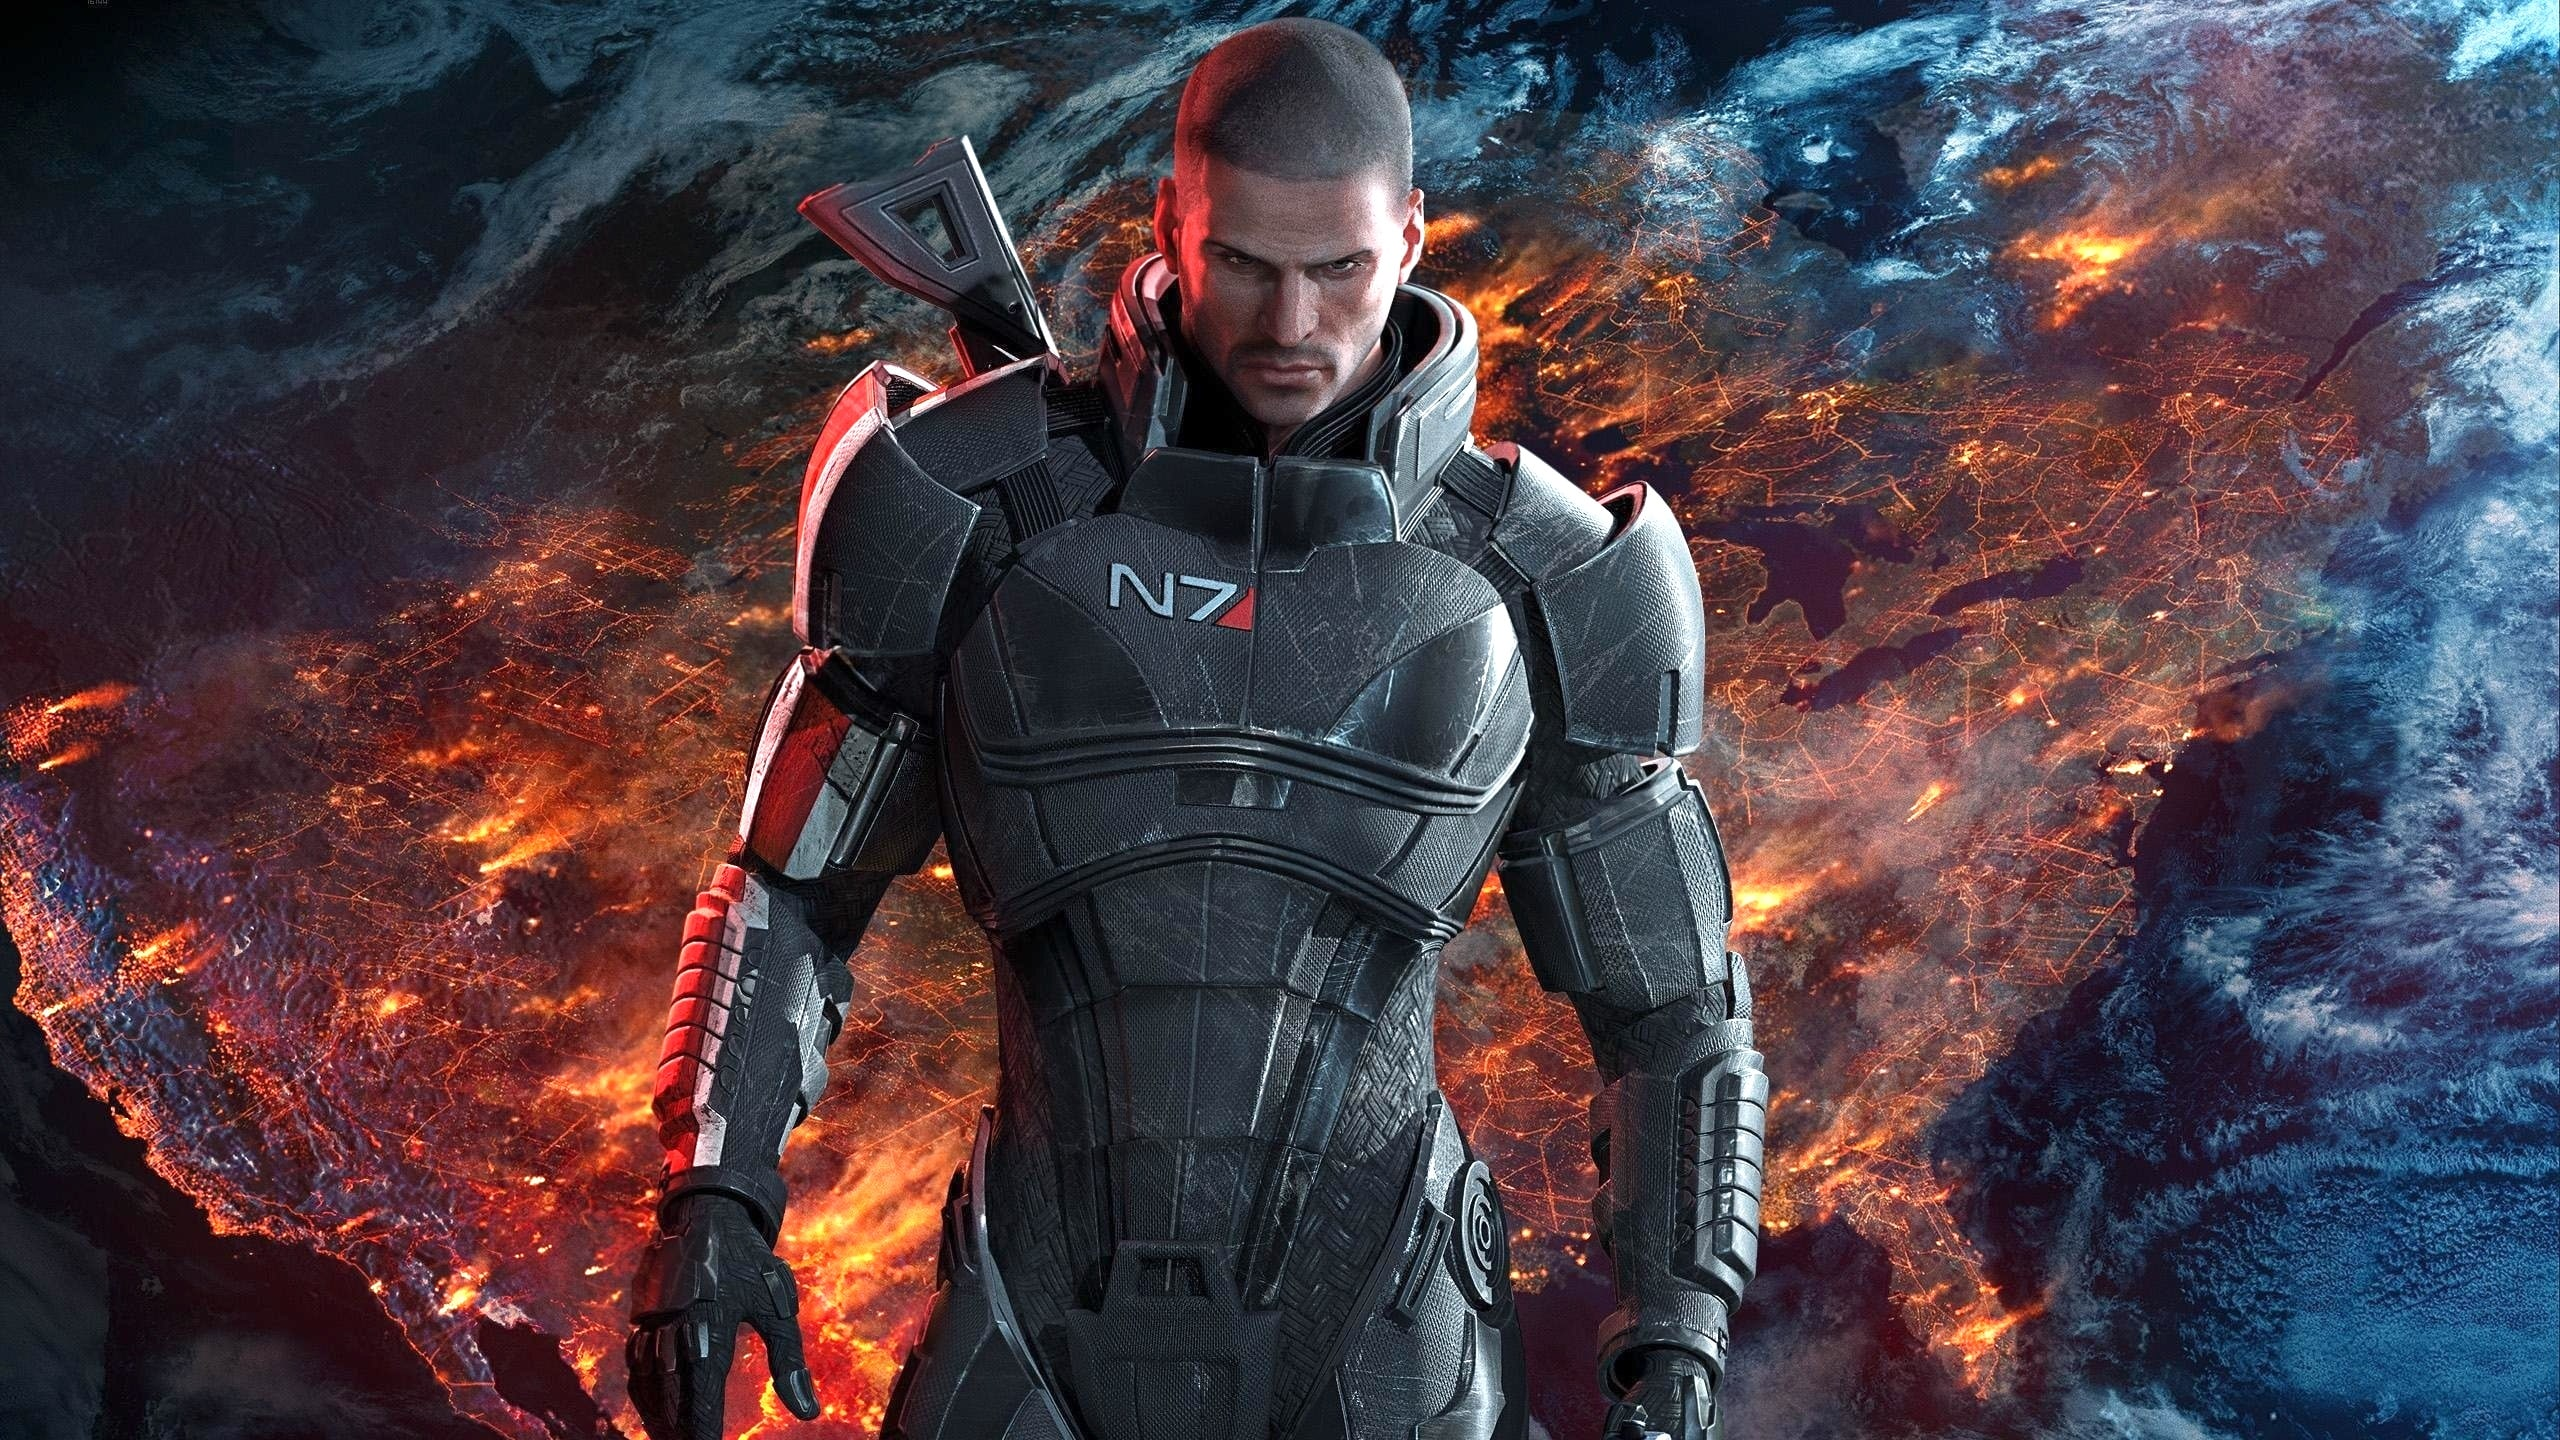 Mass Effect Trilogy Should Be Close To Launch